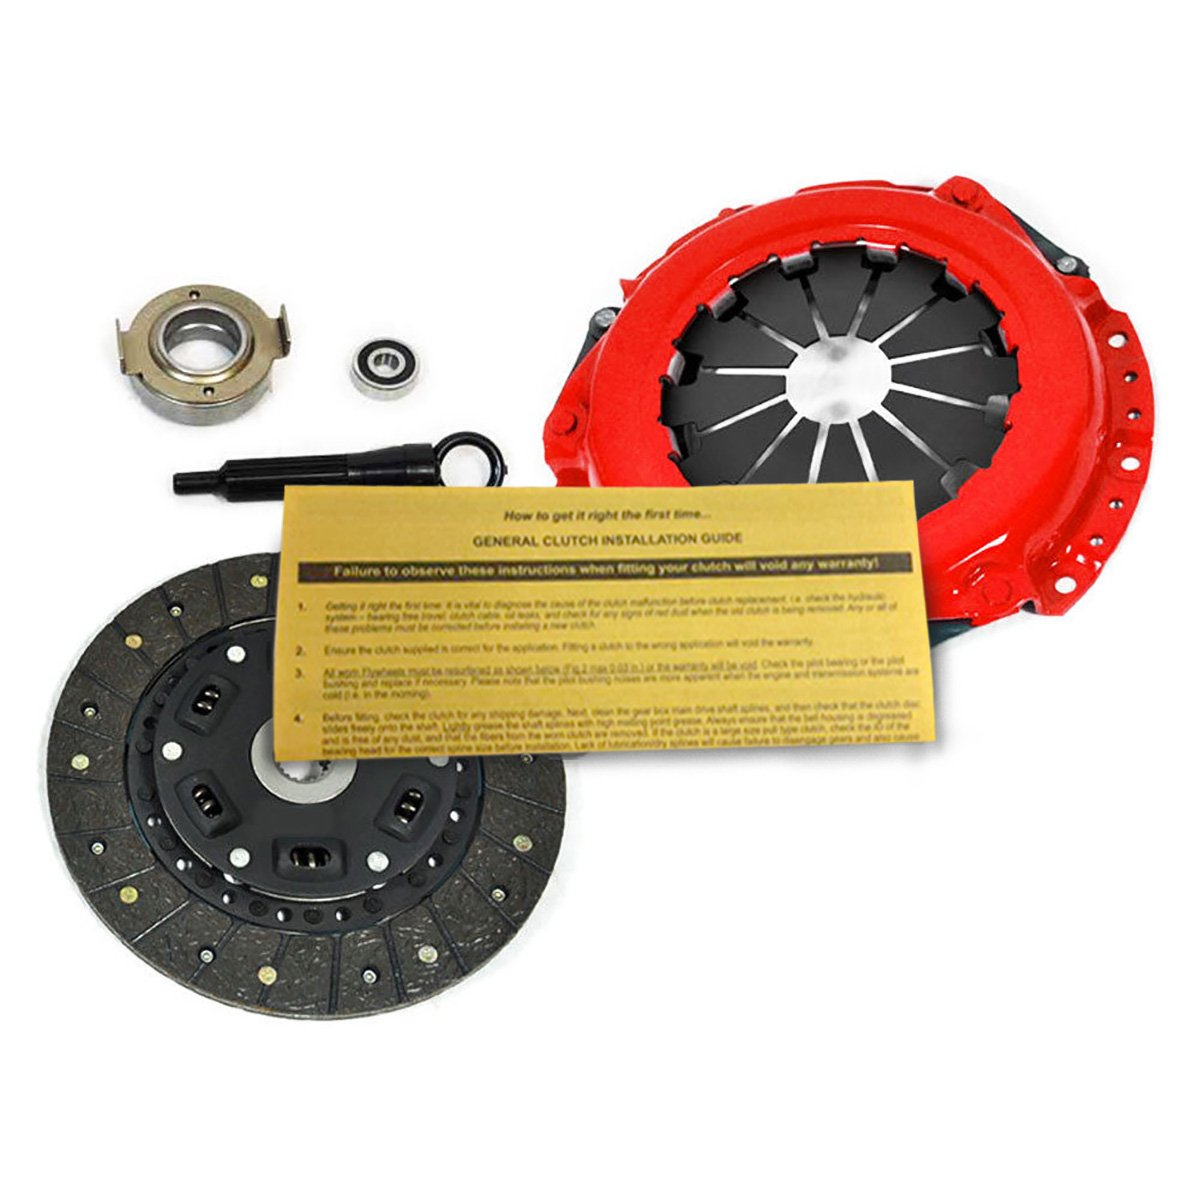 Amazon.com: EFT STAGE 2 CLUTCH KIT FOR 1999-2001 SUZUKI VITARA 1.6L: Automotive